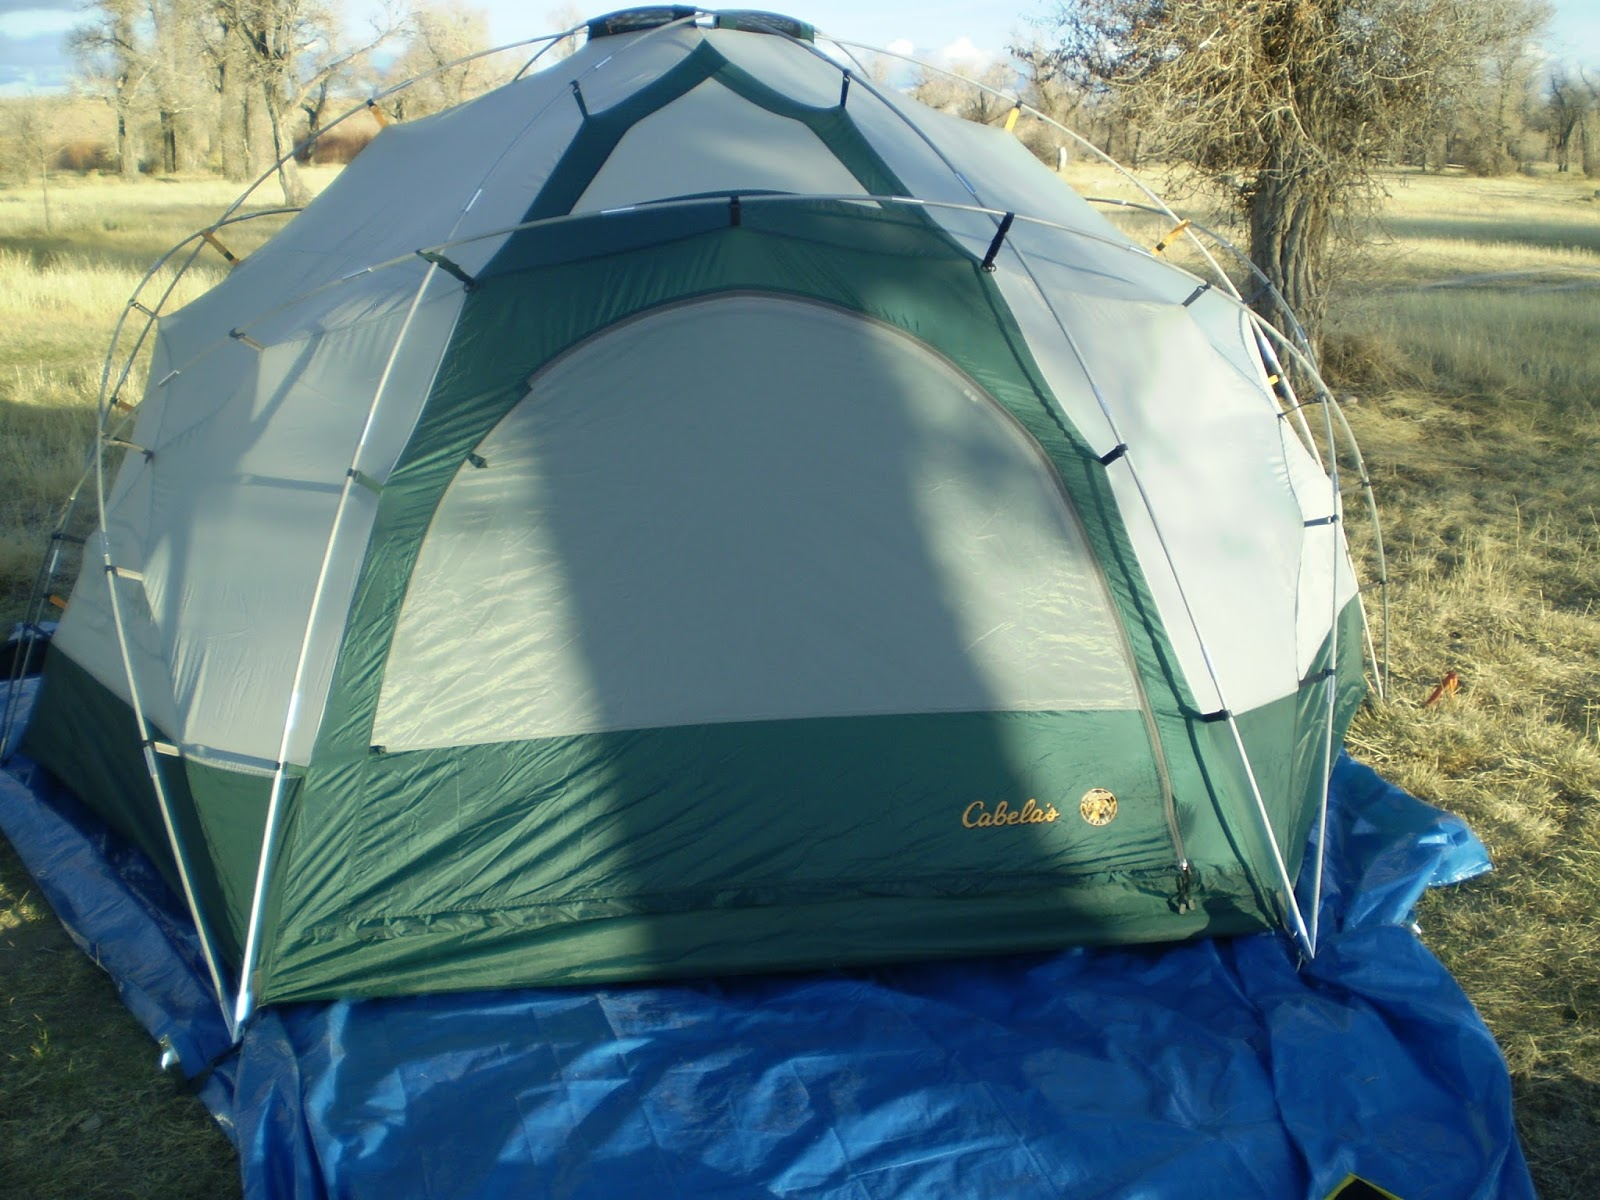 Vestibule Having the tarp big enough for the vestibule makes it so you can take your wading boots off on the tarp under the protection of the vestibule. & Fly Fishing the West with Howard: Alaskan Guide Model Tent Review ...